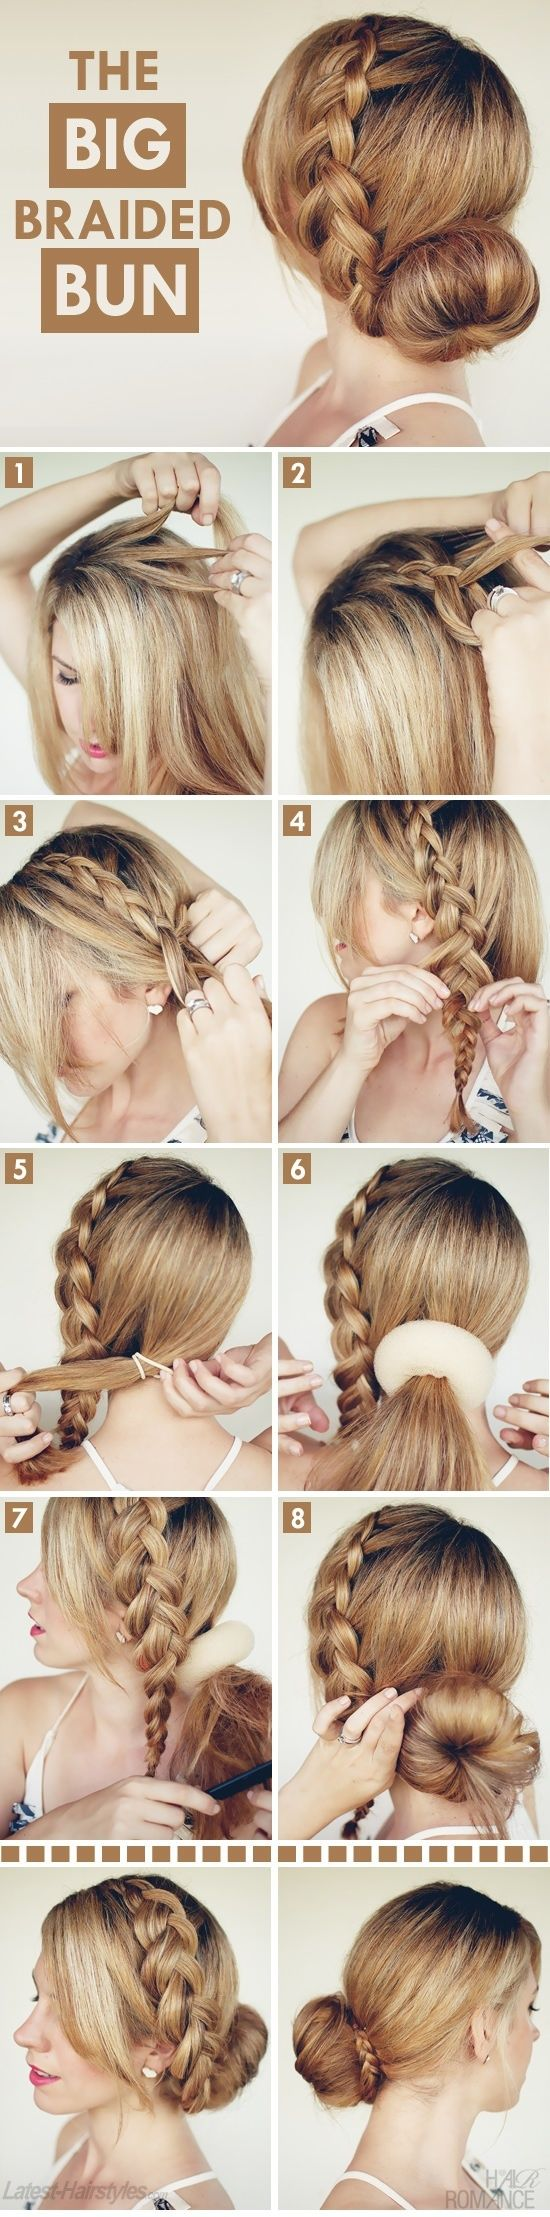 The Big Braided Bun